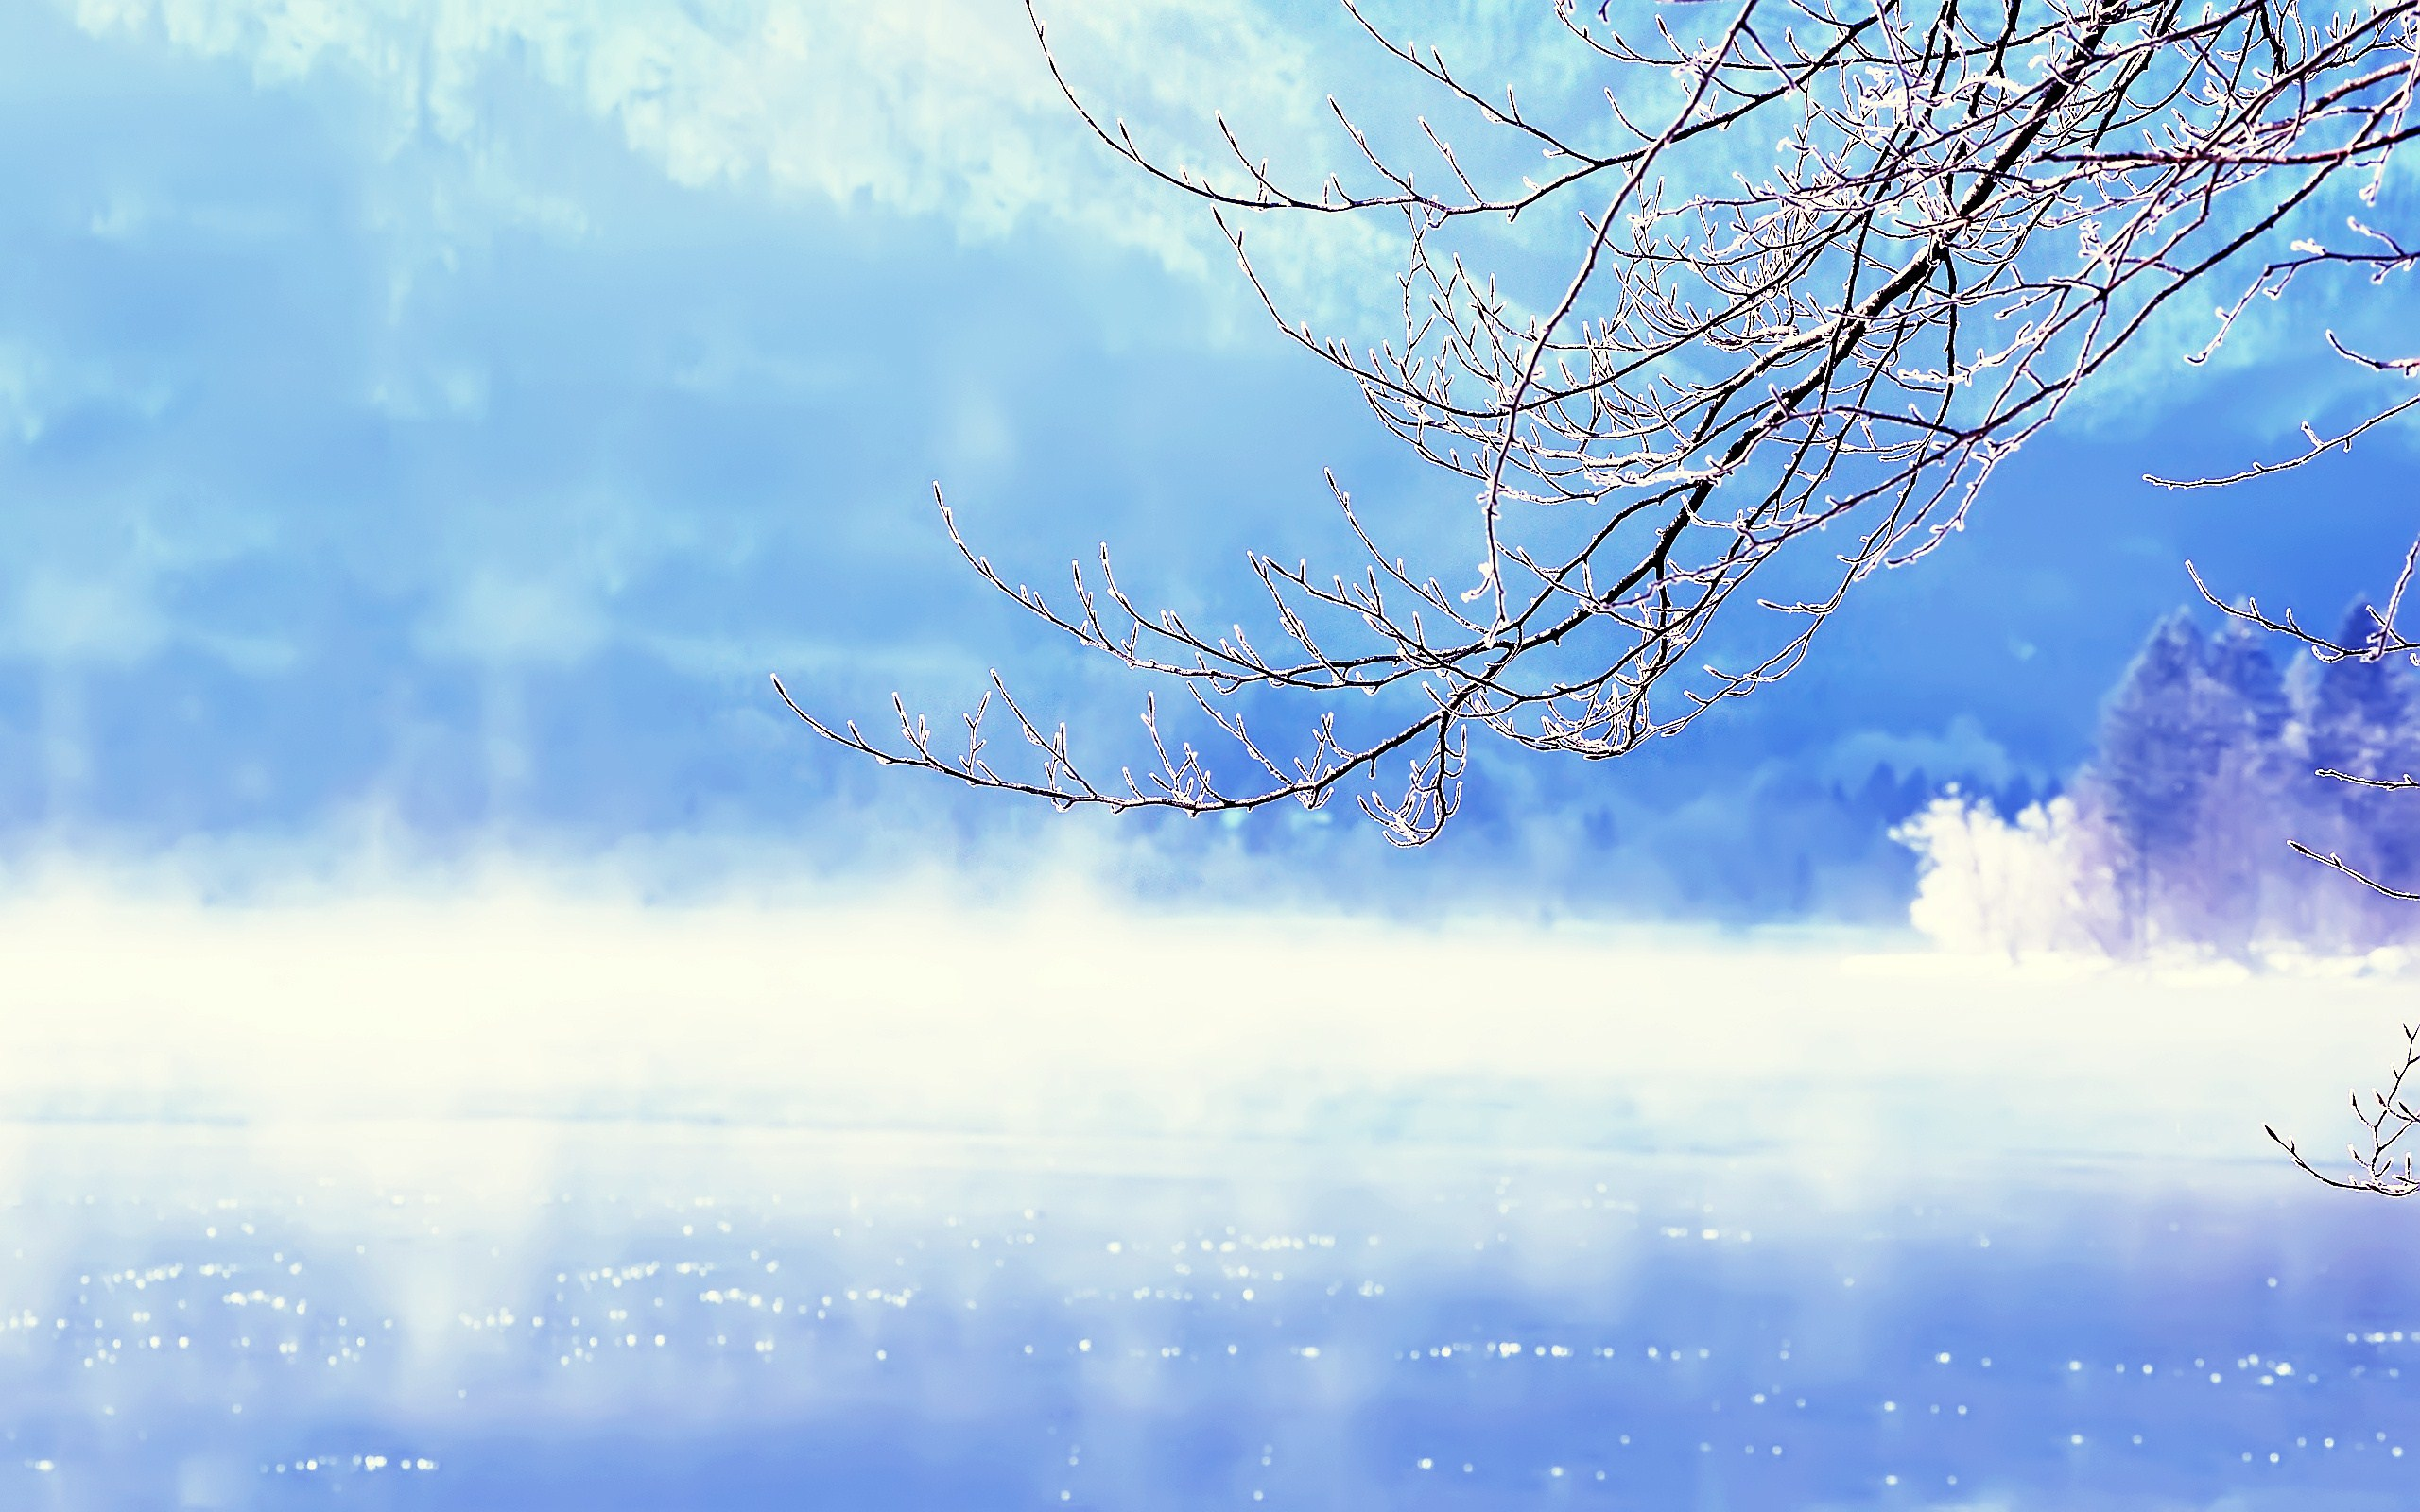 Beautiful Winter Background   Wallpaper High Definition High Quality 2560x1600